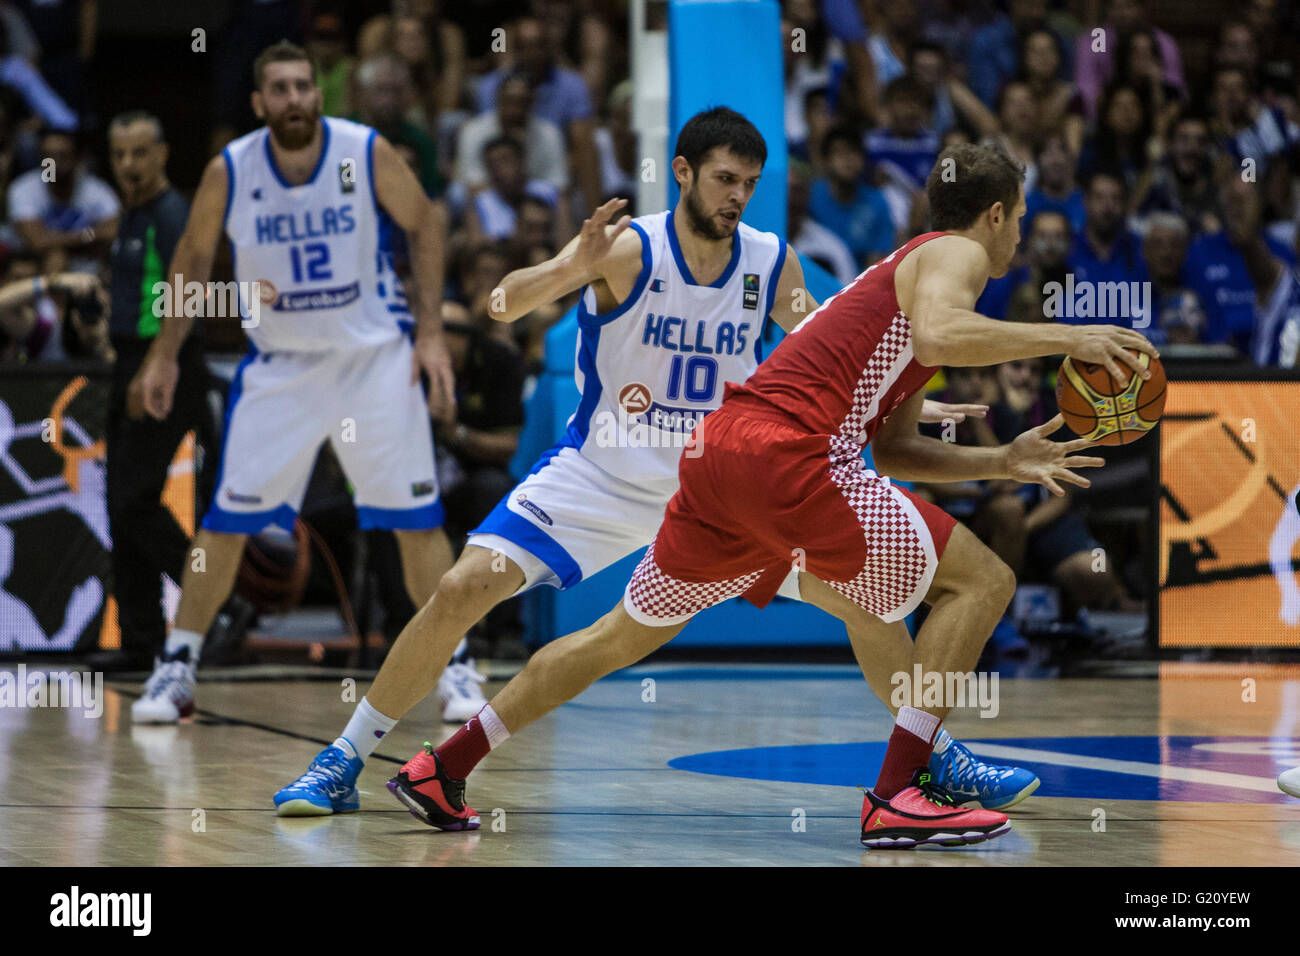 Kostas Papanikolaou (C ), player of Greece, defends during FIBA Basketball World Cup 2014 Group Phase match, on - Stock Image